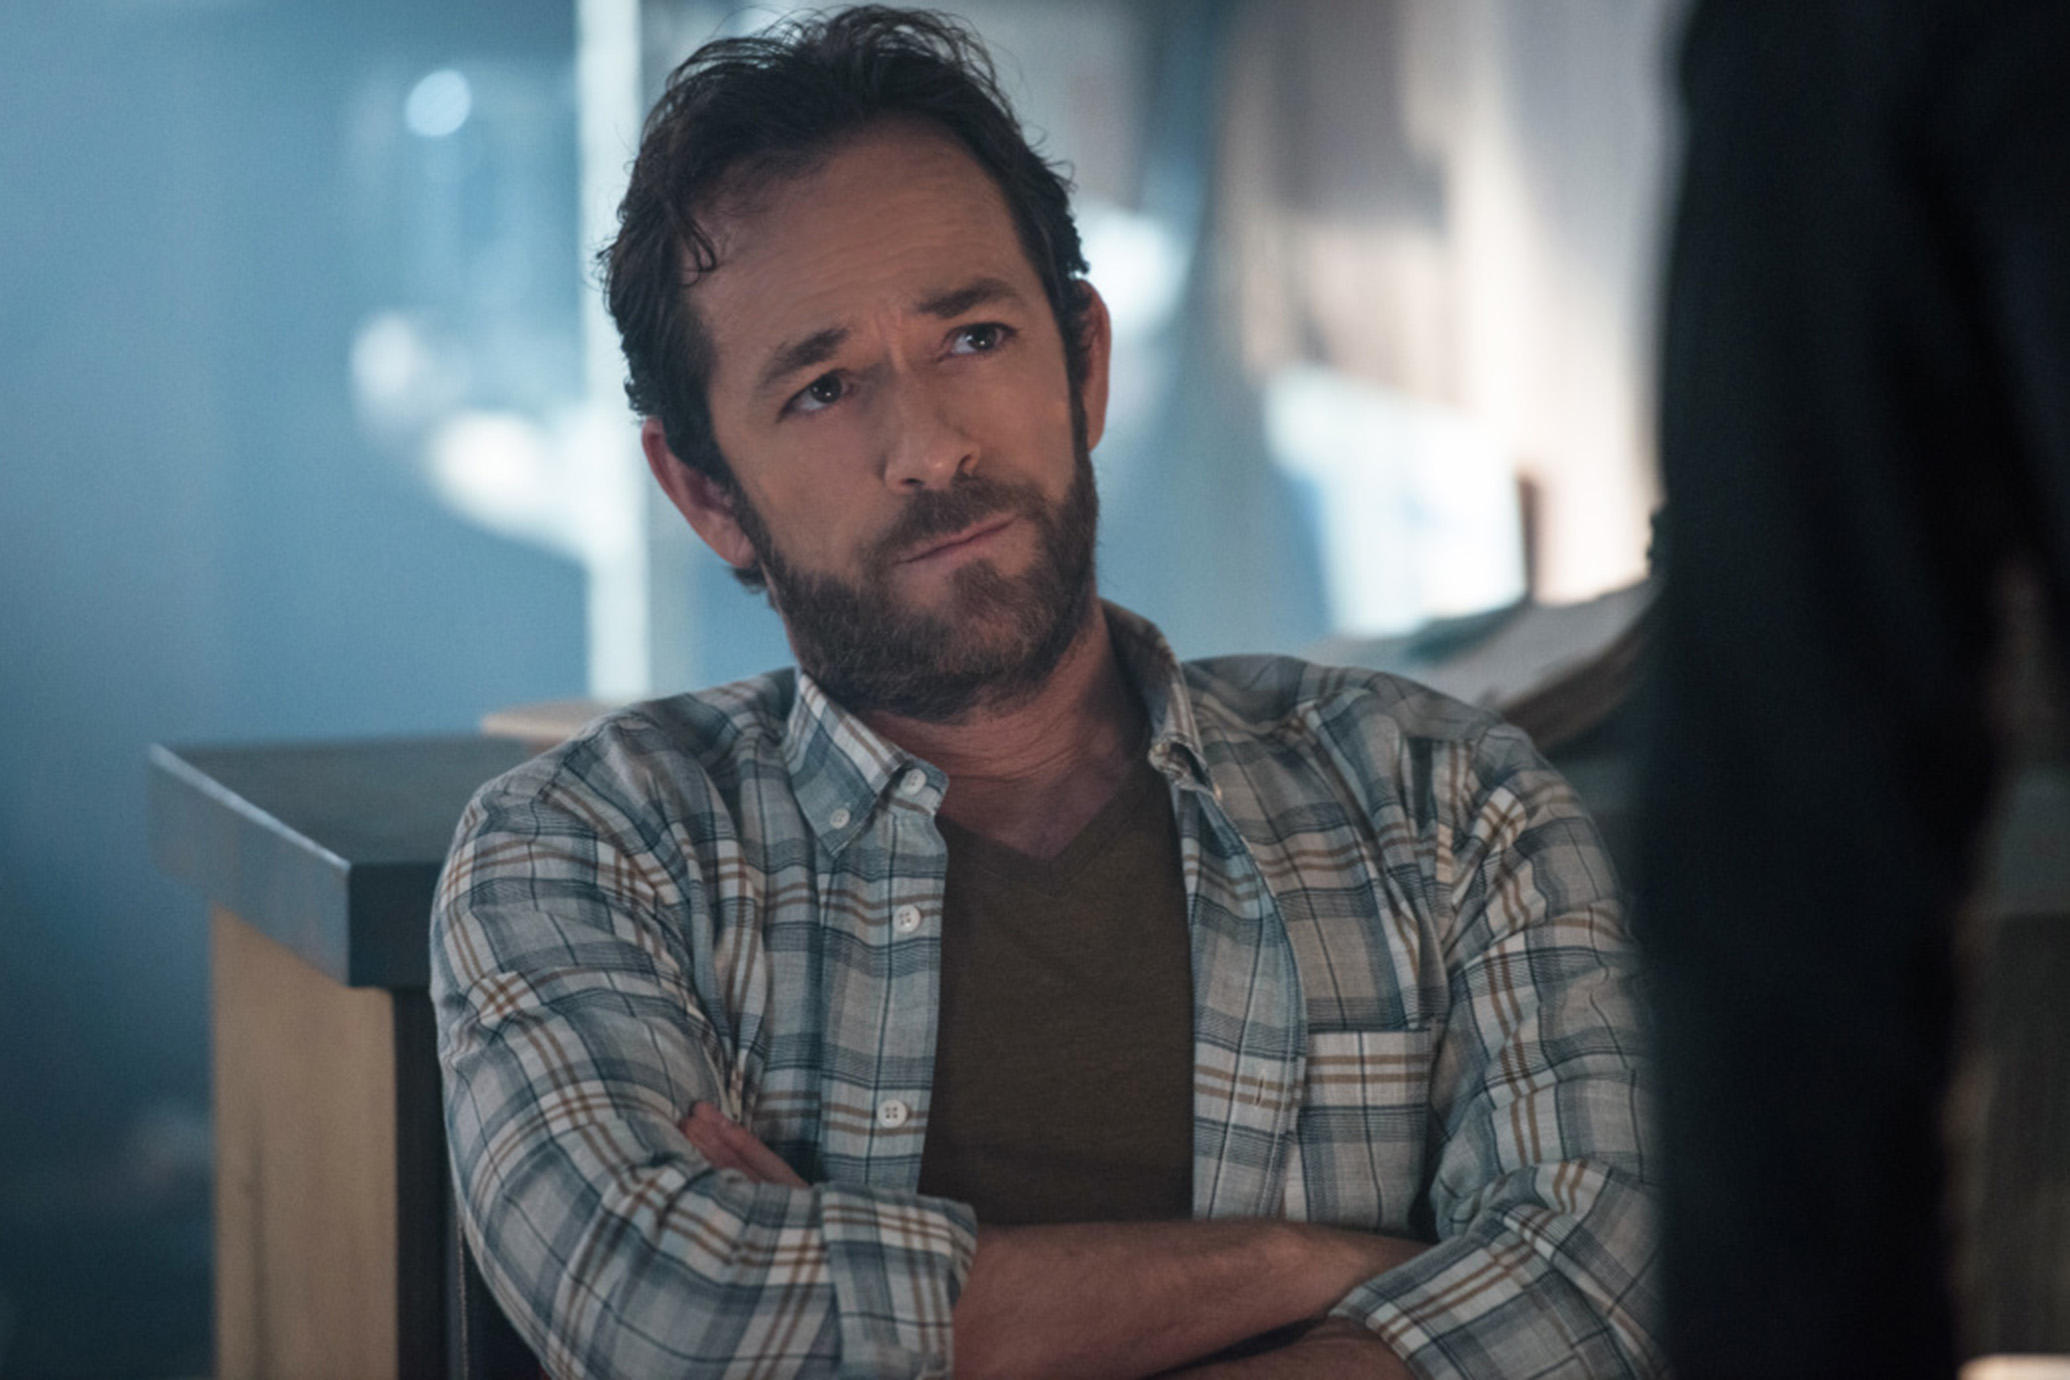 luke-perry-rivluke-perry-riverdale-fred-andrewserdale